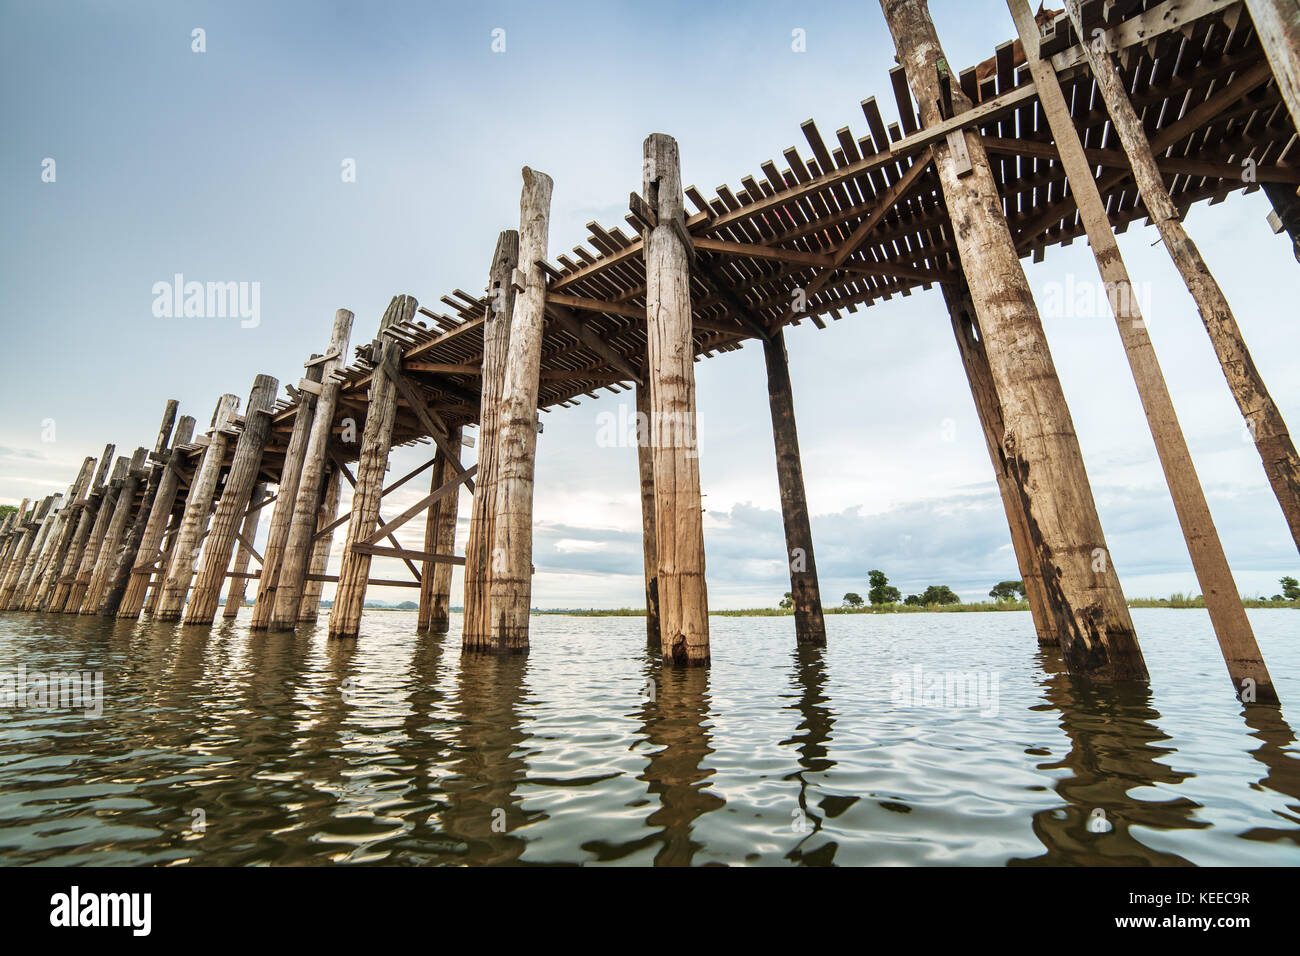 Bridge Across Valley Of Death >> Bridge Construction Burma Stock Photos & Bridge Construction Burma Stock Images - Alamy